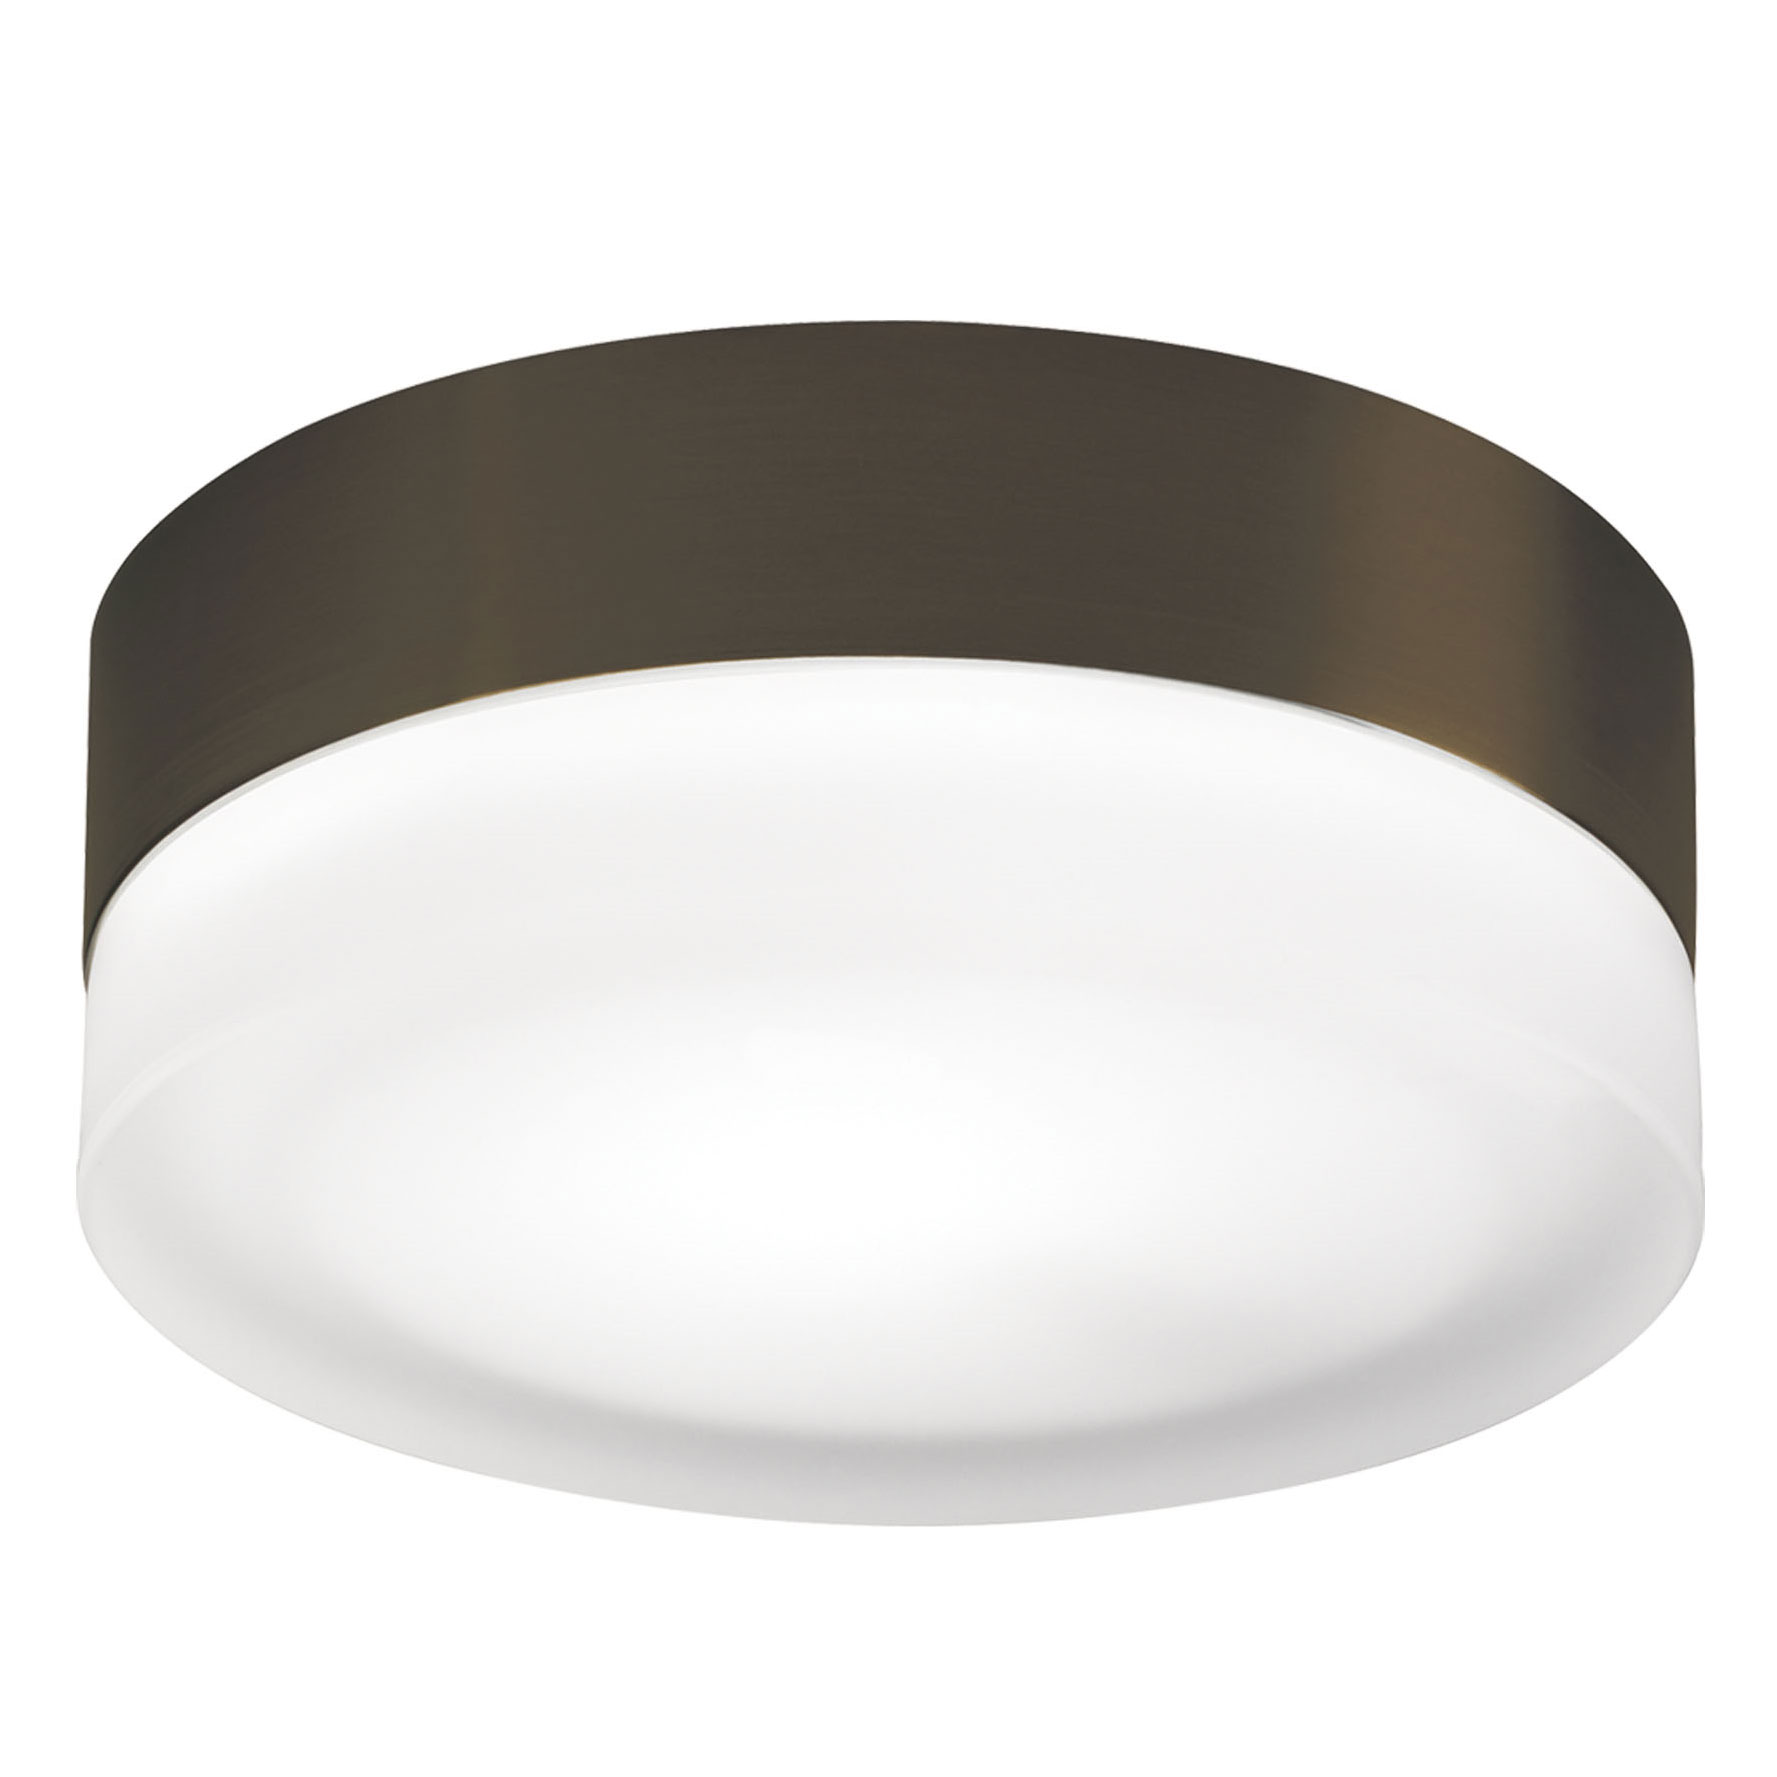 360 round ceiling flush mount by tech lighting 700fm360lz